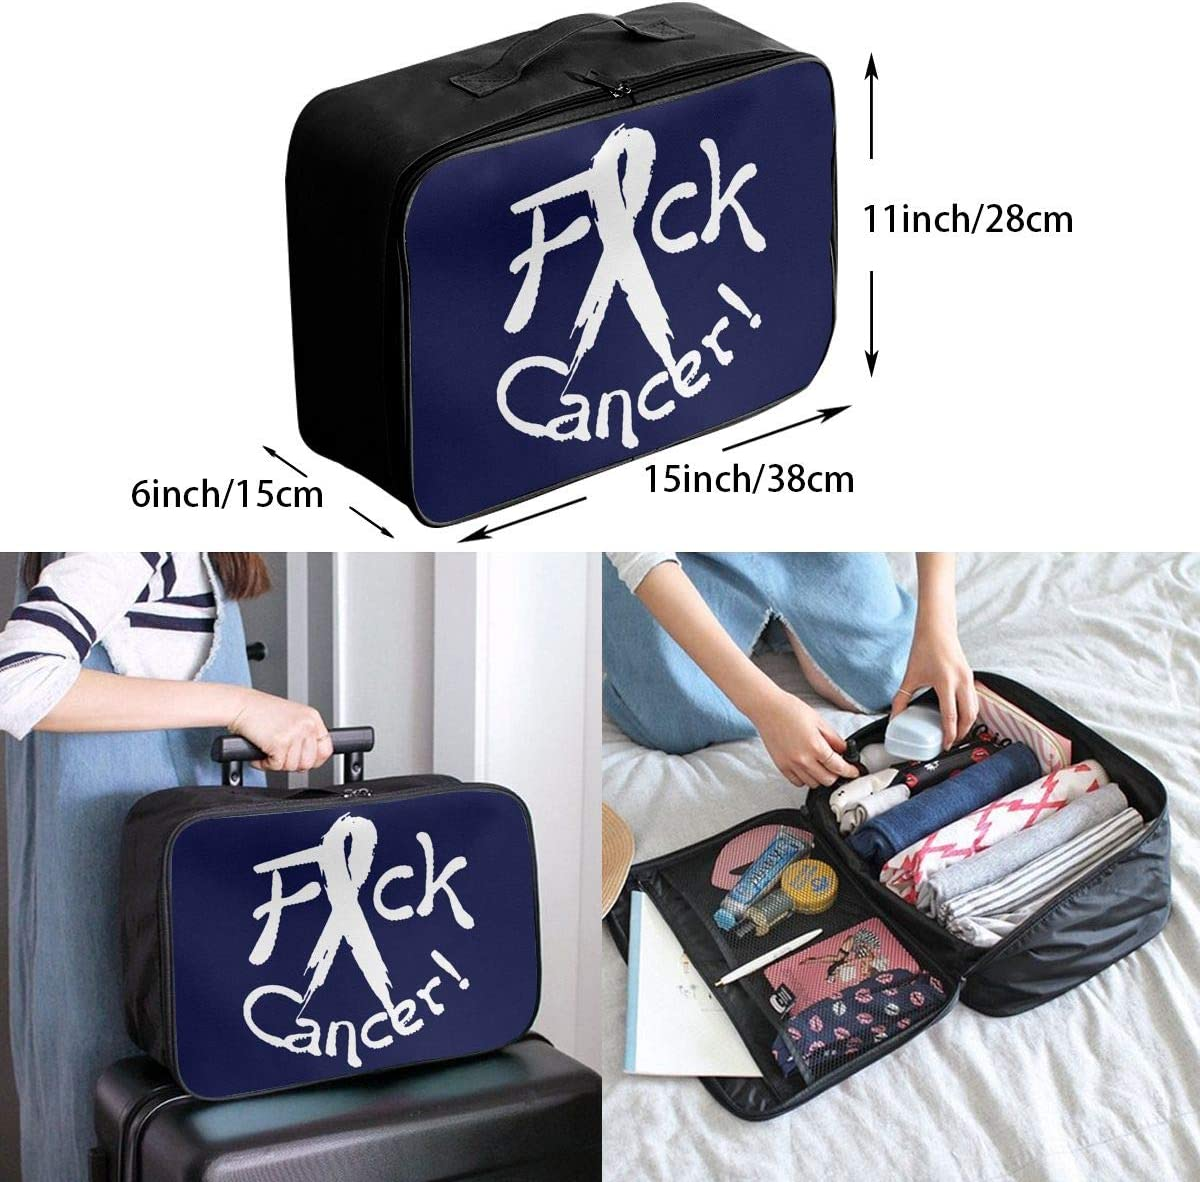 Fck Cancer Carry Lightweight Large Capacity Portable Travel Luggage Trolley Bag